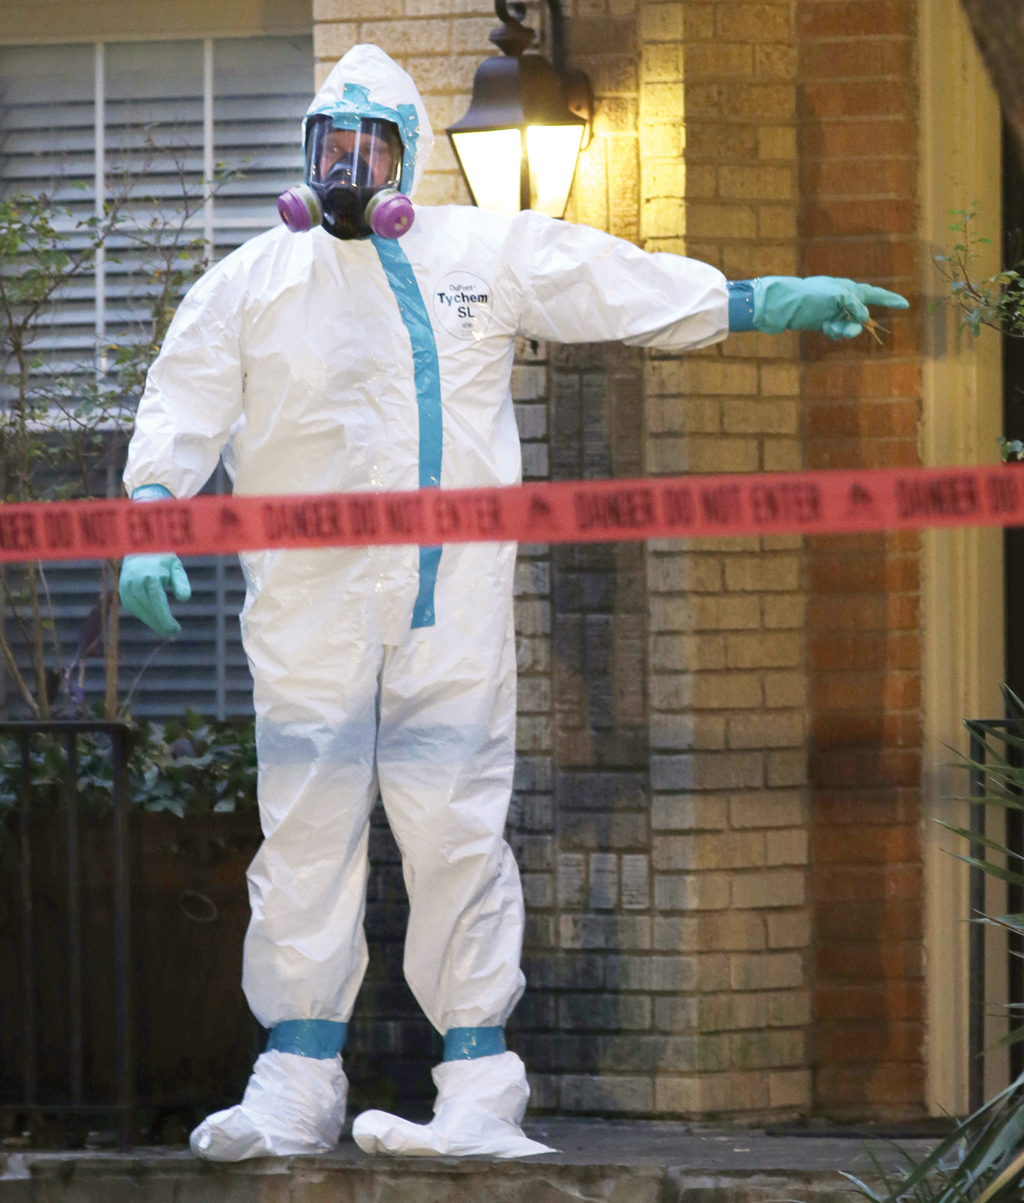 Ebola hazmat suits are popular Halloween costumes this year